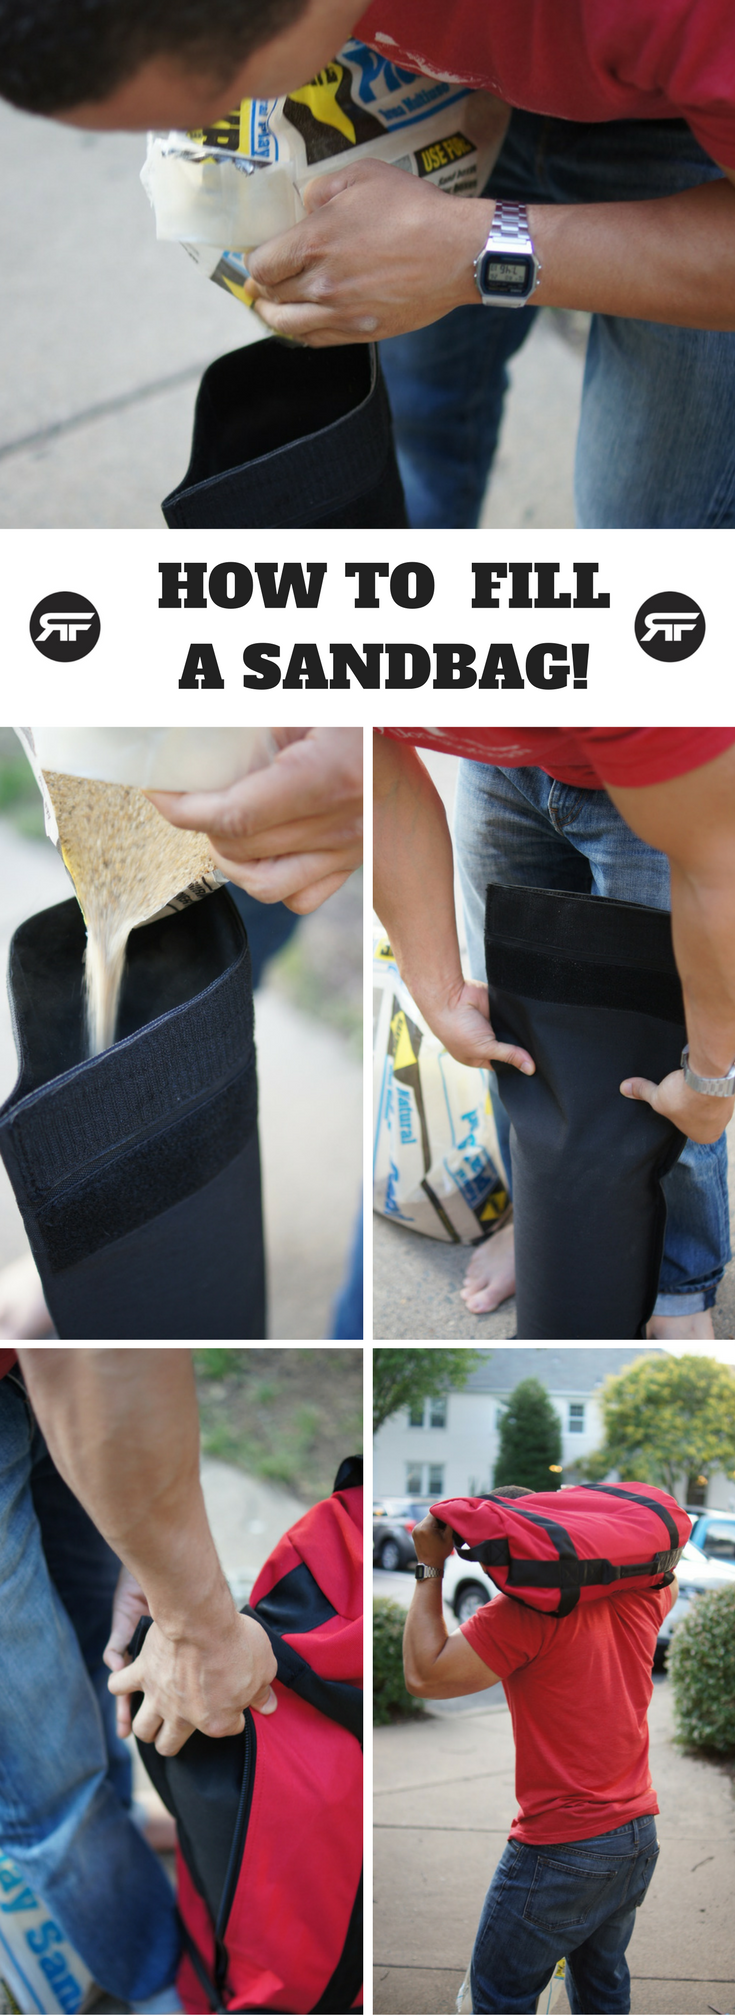 Rep Fitness How to Fill Your Sandbag Pinterest Image 1 (1)